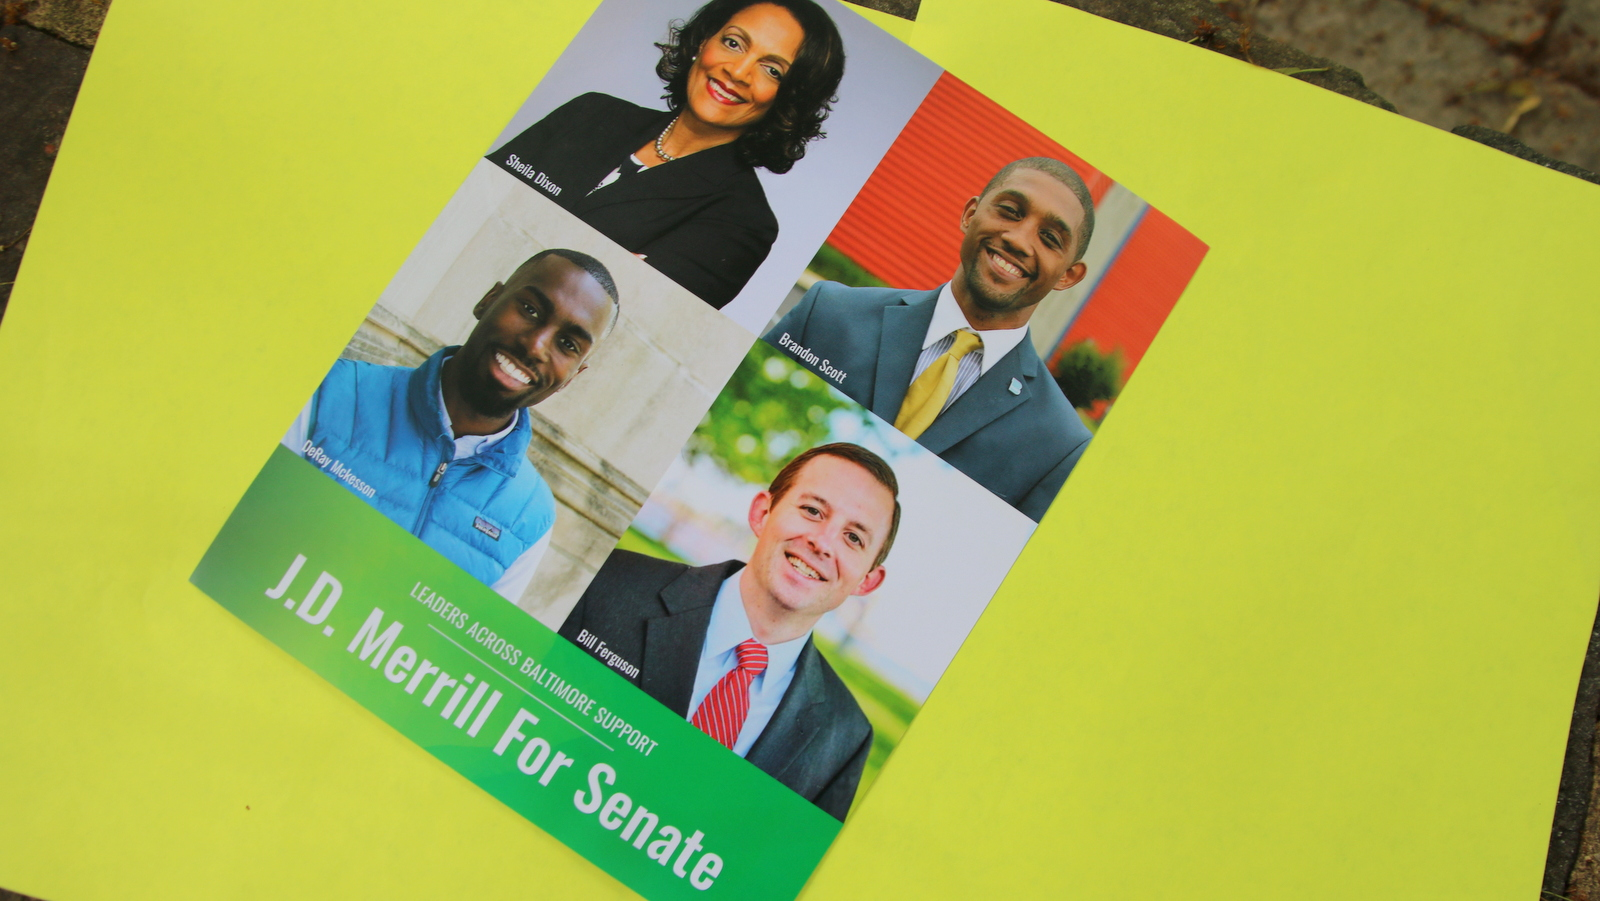 A Merrill mailer stressing endorsements from Brandon Scott, Sheila Dixon, Deray McKesson and Bill Ferguson.